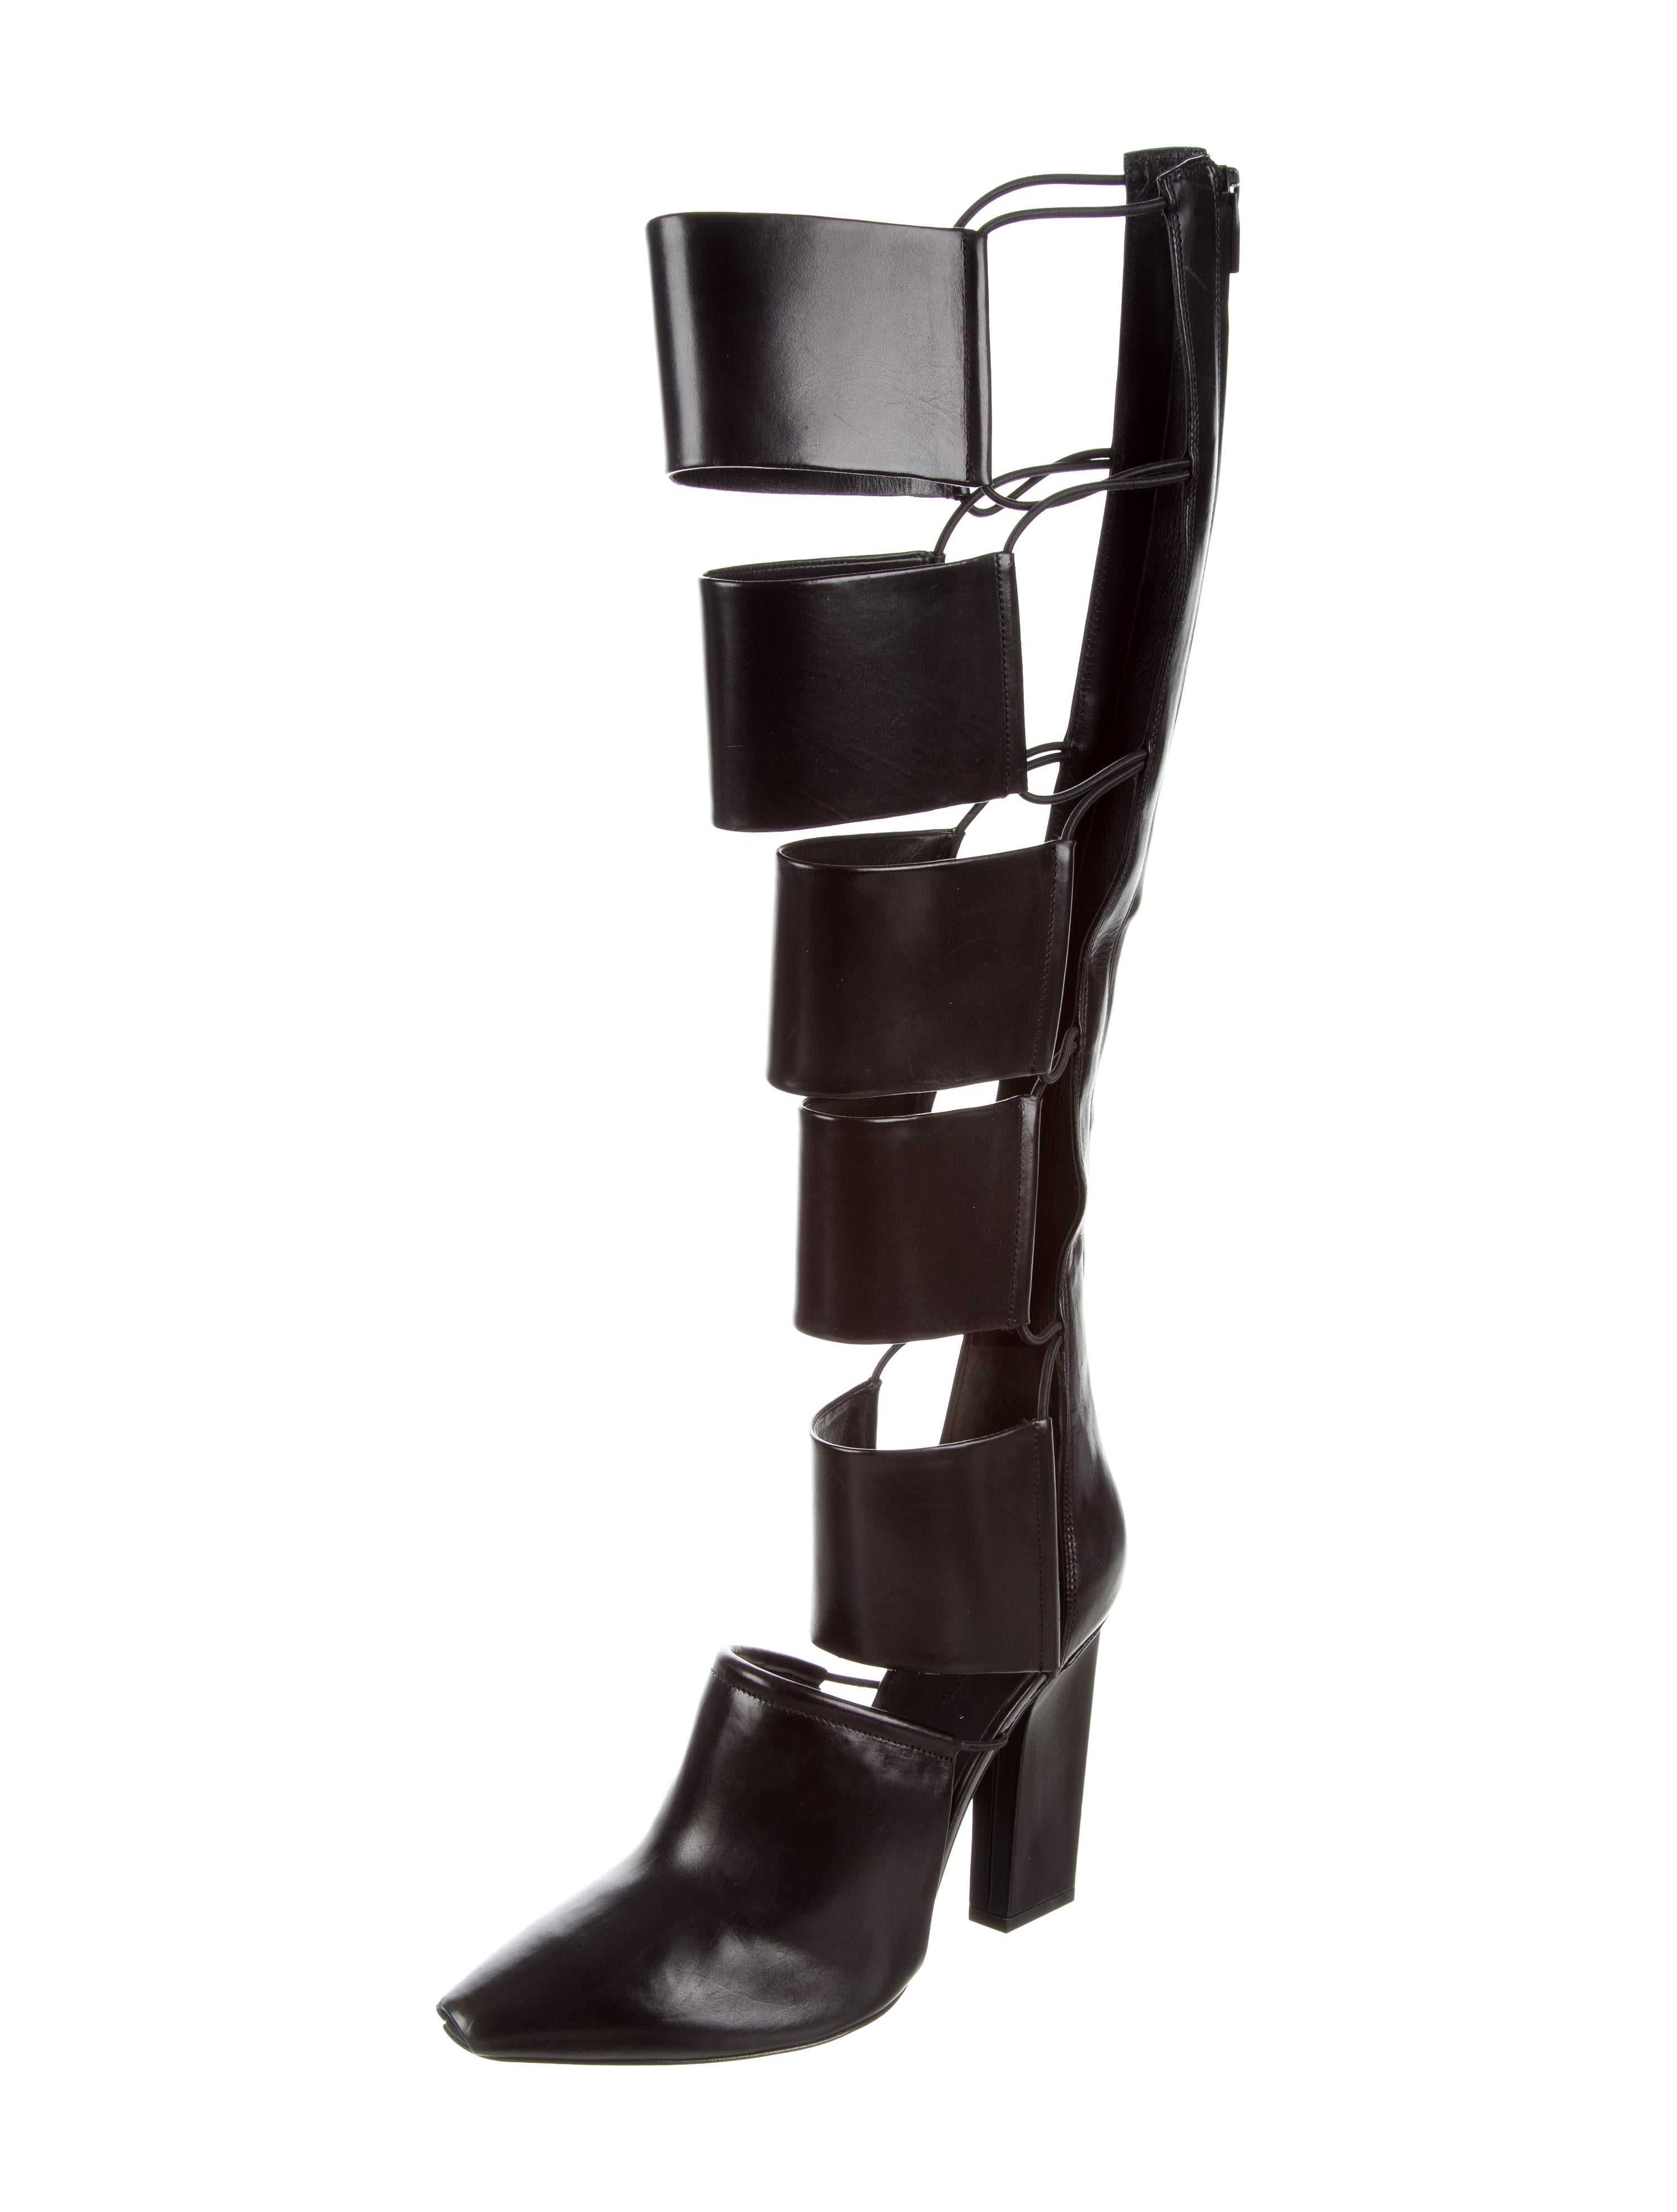 sale Inexpensive latest cheap online Alexander Wang Marta Knee-High Boots w/ Tags free shipping cheapest price jIjwHto8h